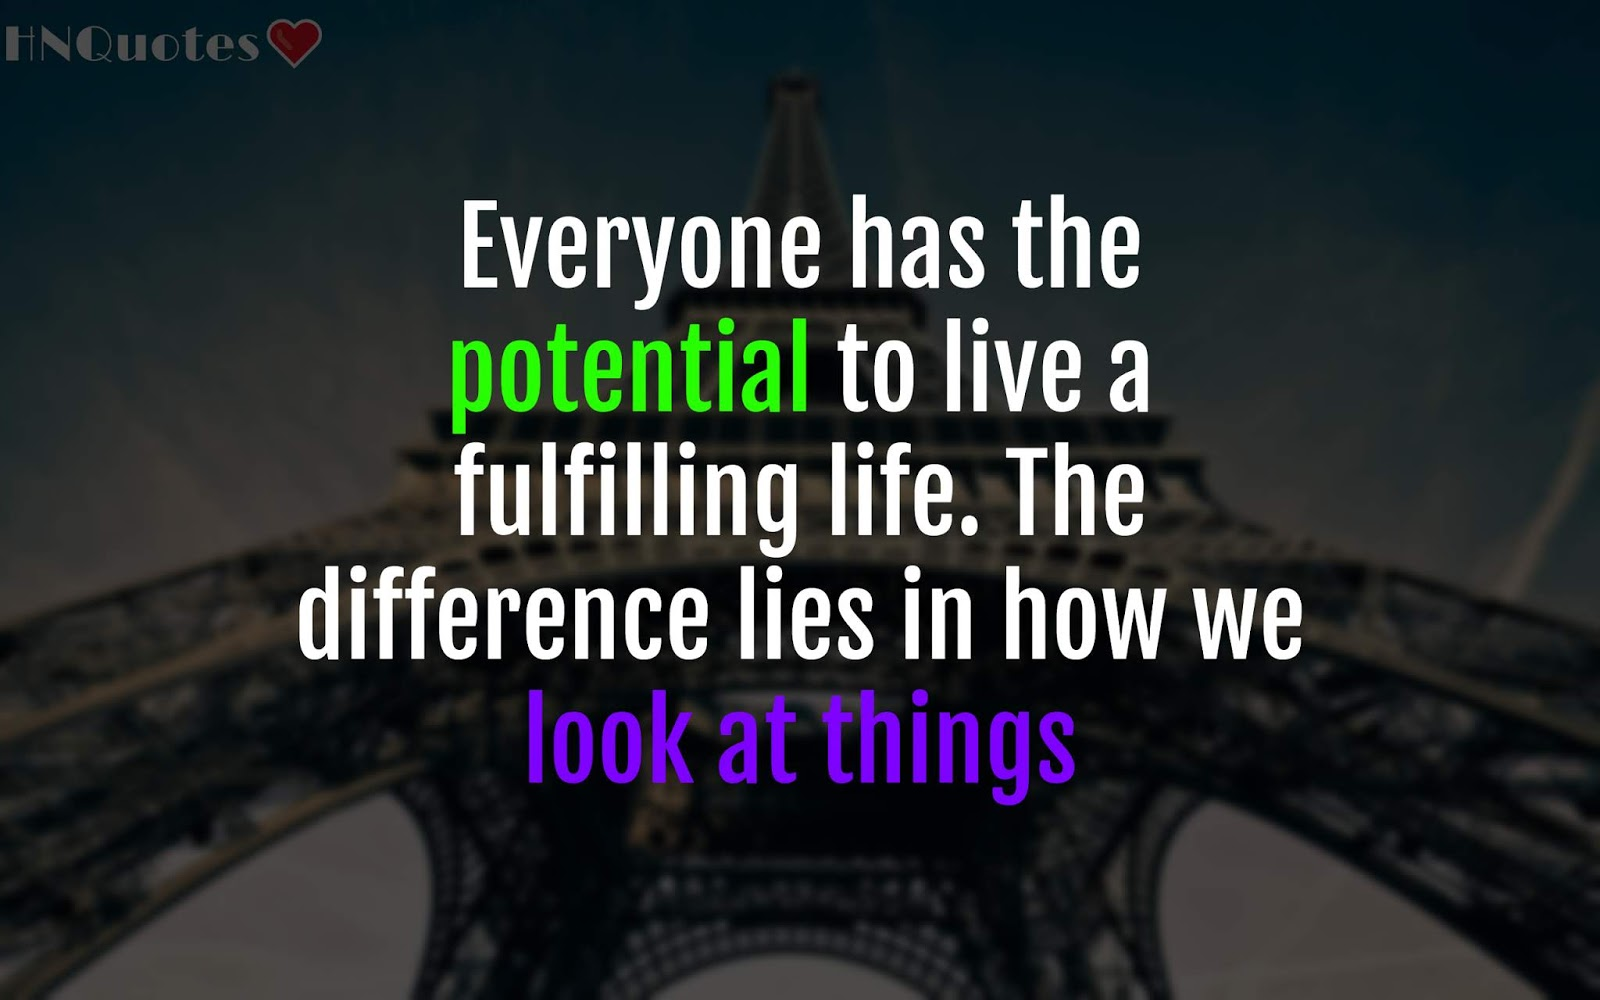 Inspirational-Quotes-On-Everyday-Life-Motivational-Sayings-108-Beautiful-HNQuotes